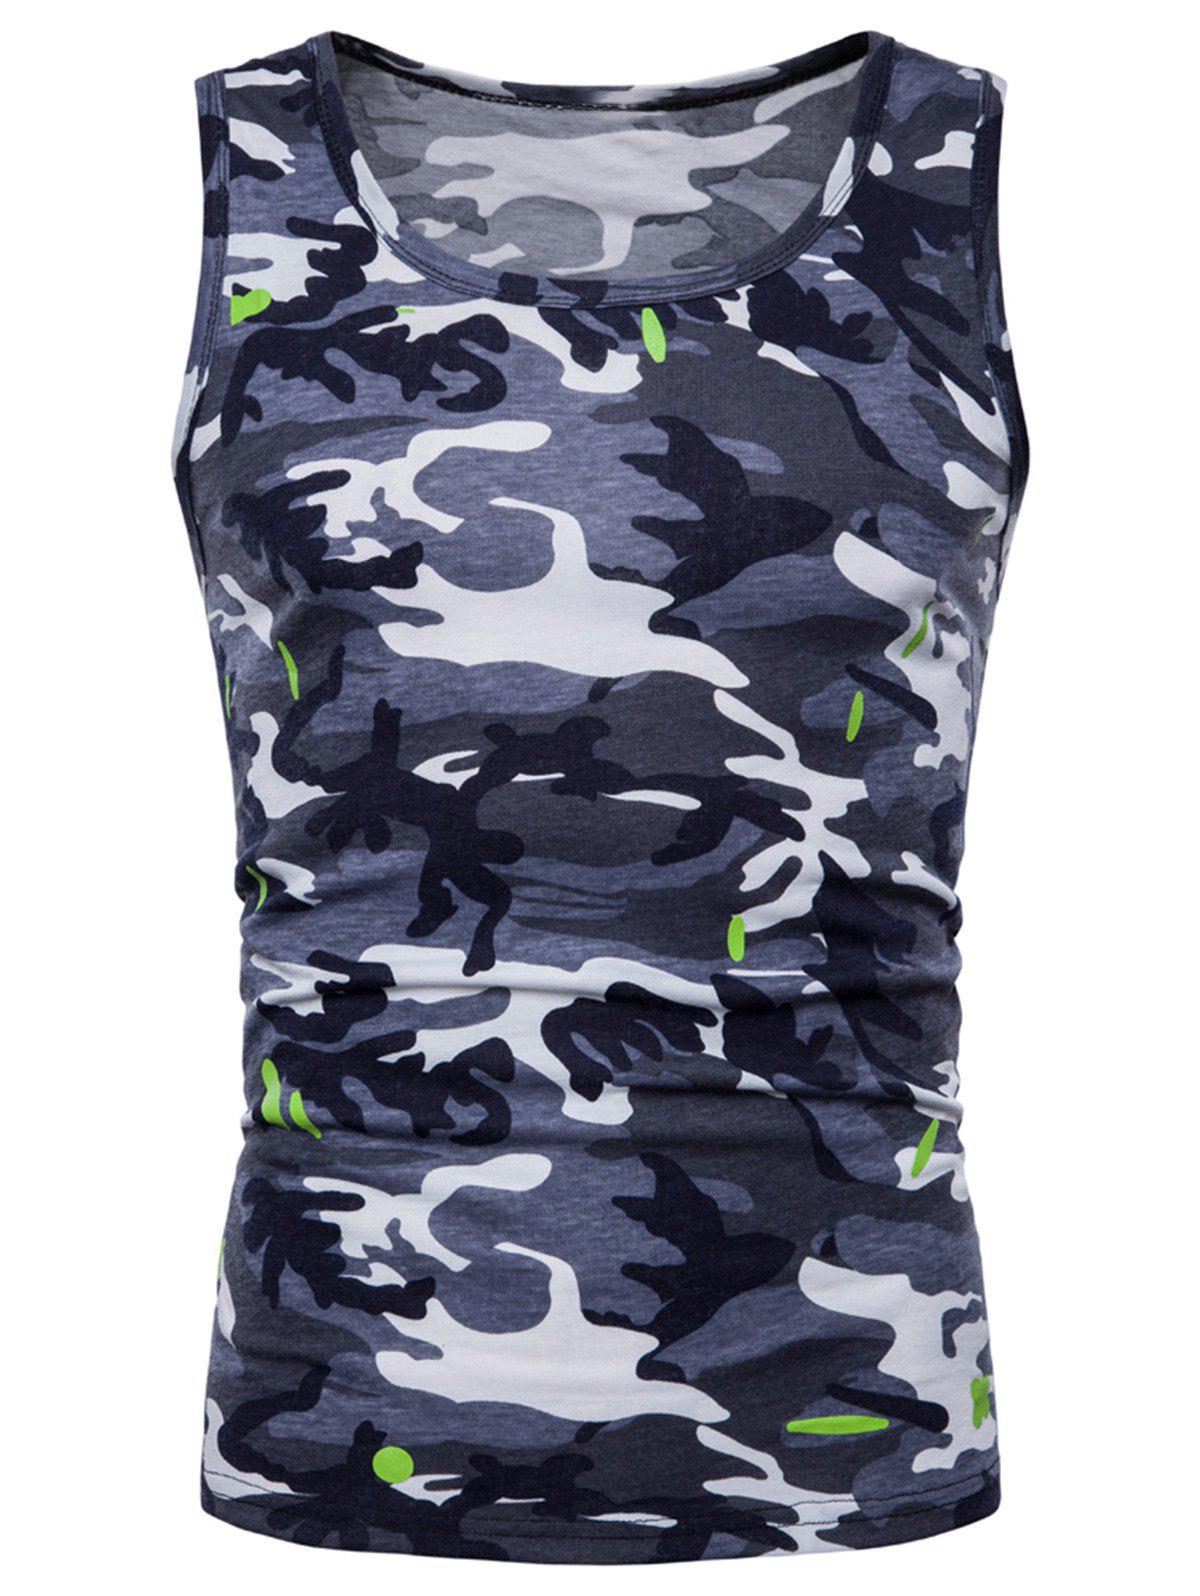 Store Relaxed Fit Camo Print Tank Top